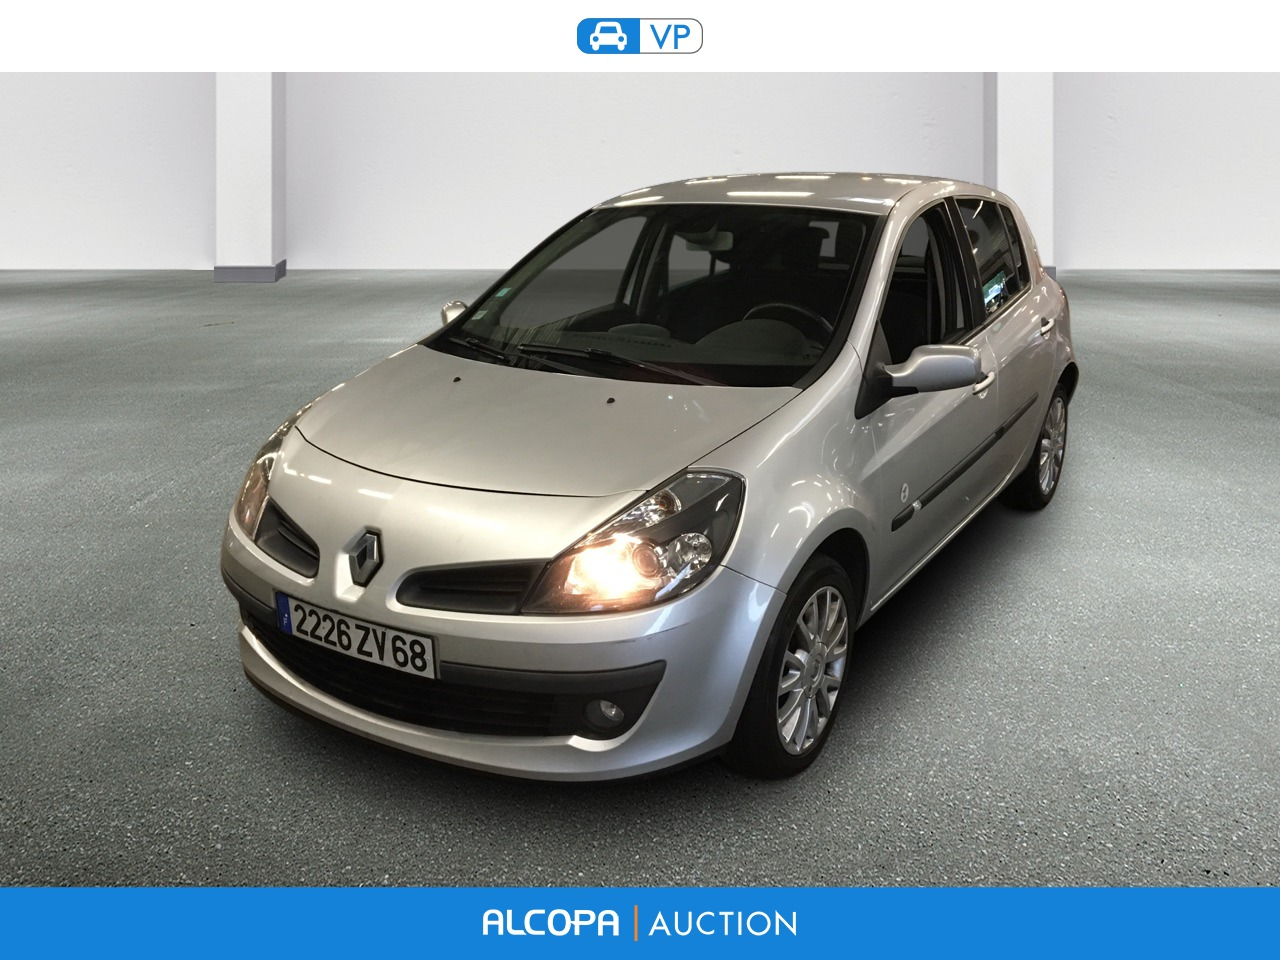 renault clio iii clio 1 5 dci 85 eco2 xv de france alcopa auction. Black Bedroom Furniture Sets. Home Design Ideas